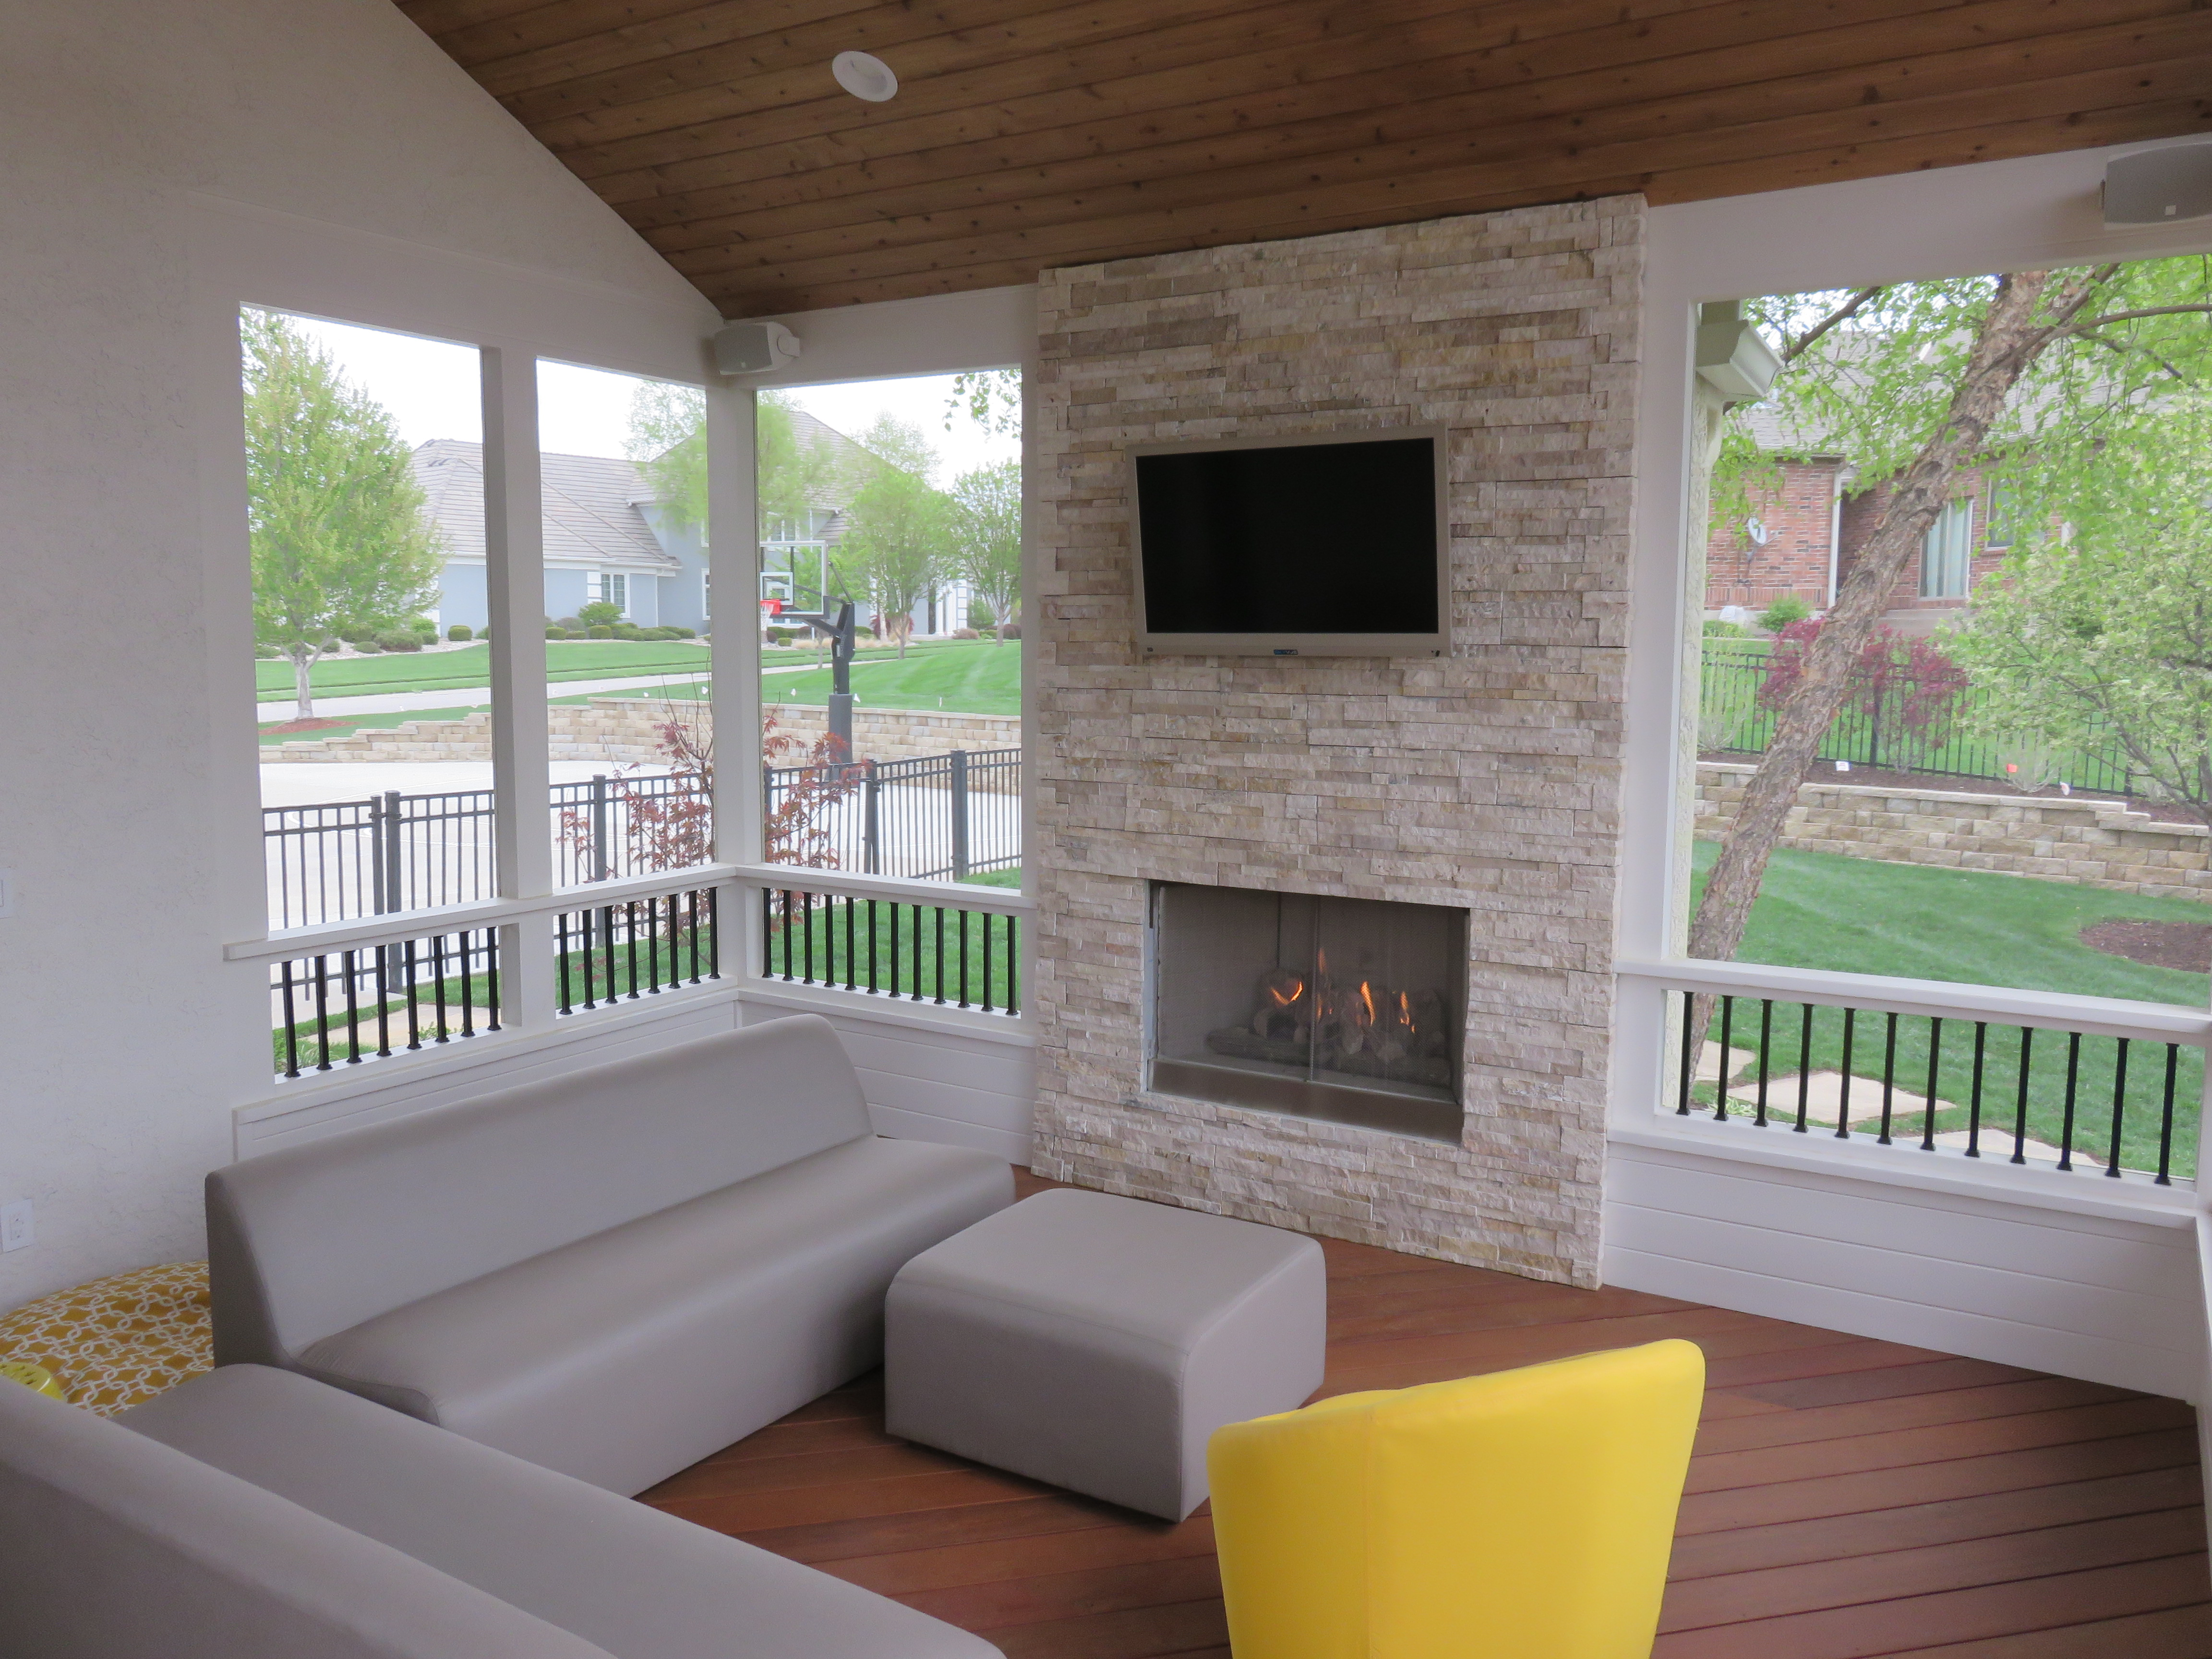 Outdoor Fireplace Electric Outdoor Fireplace For Your Porch Or Deck